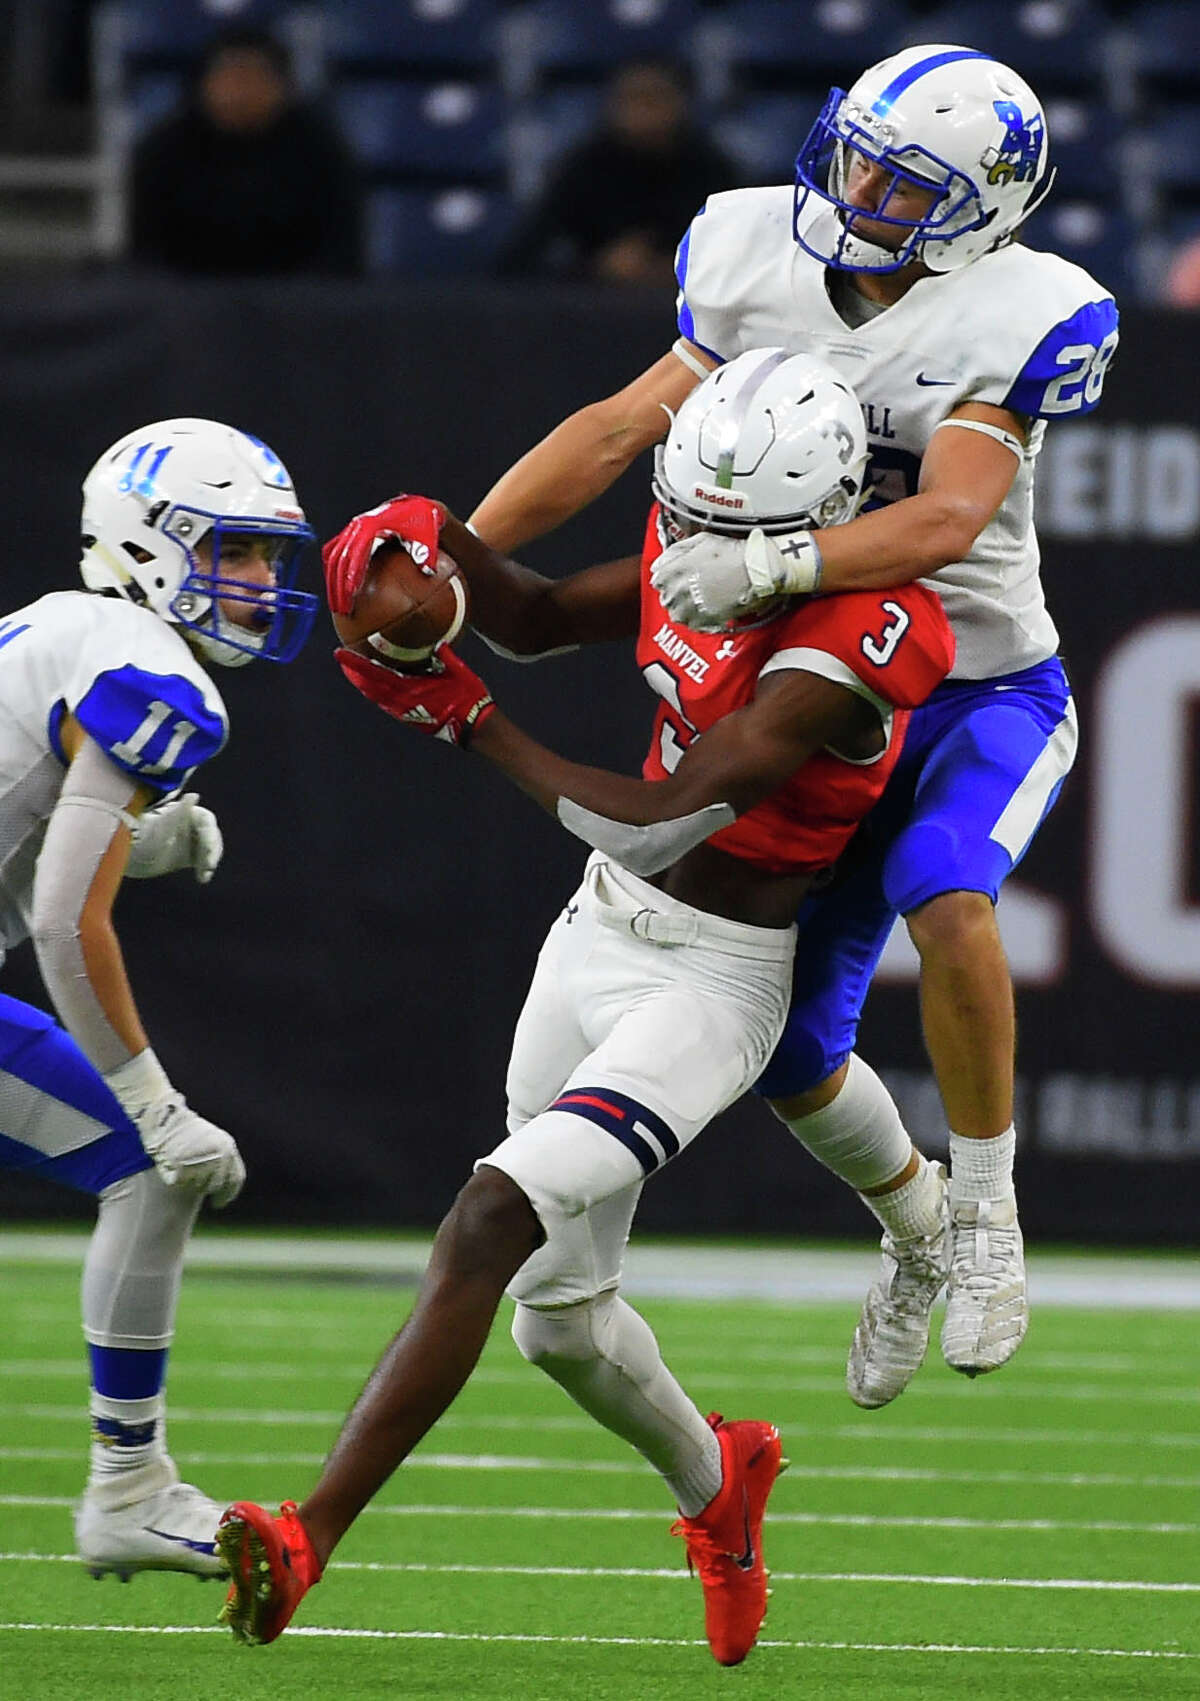 Manvel wide receiver Jalen Walthall (3) catches a pass as Barbers Hill defensive back Josh Bishop defends during the second half of a 5A Division II regional high school football playoff game, Friday, Nov. 29, 2019, in Houston.